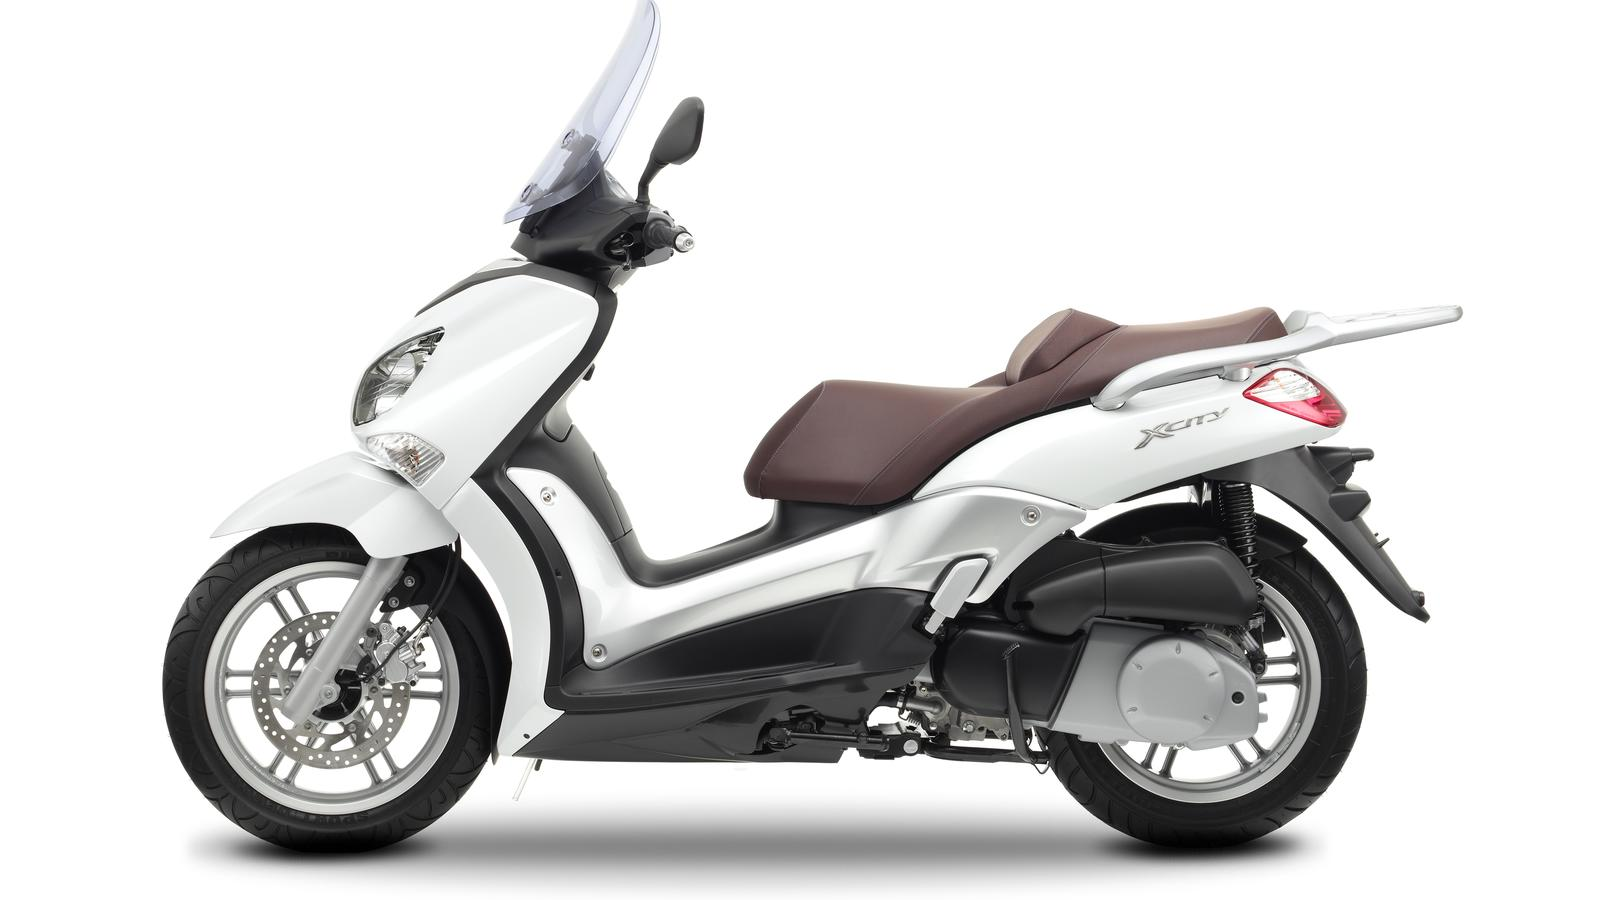 2012 yamaha x city 250 gallery 459245 top speed. Black Bedroom Furniture Sets. Home Design Ideas